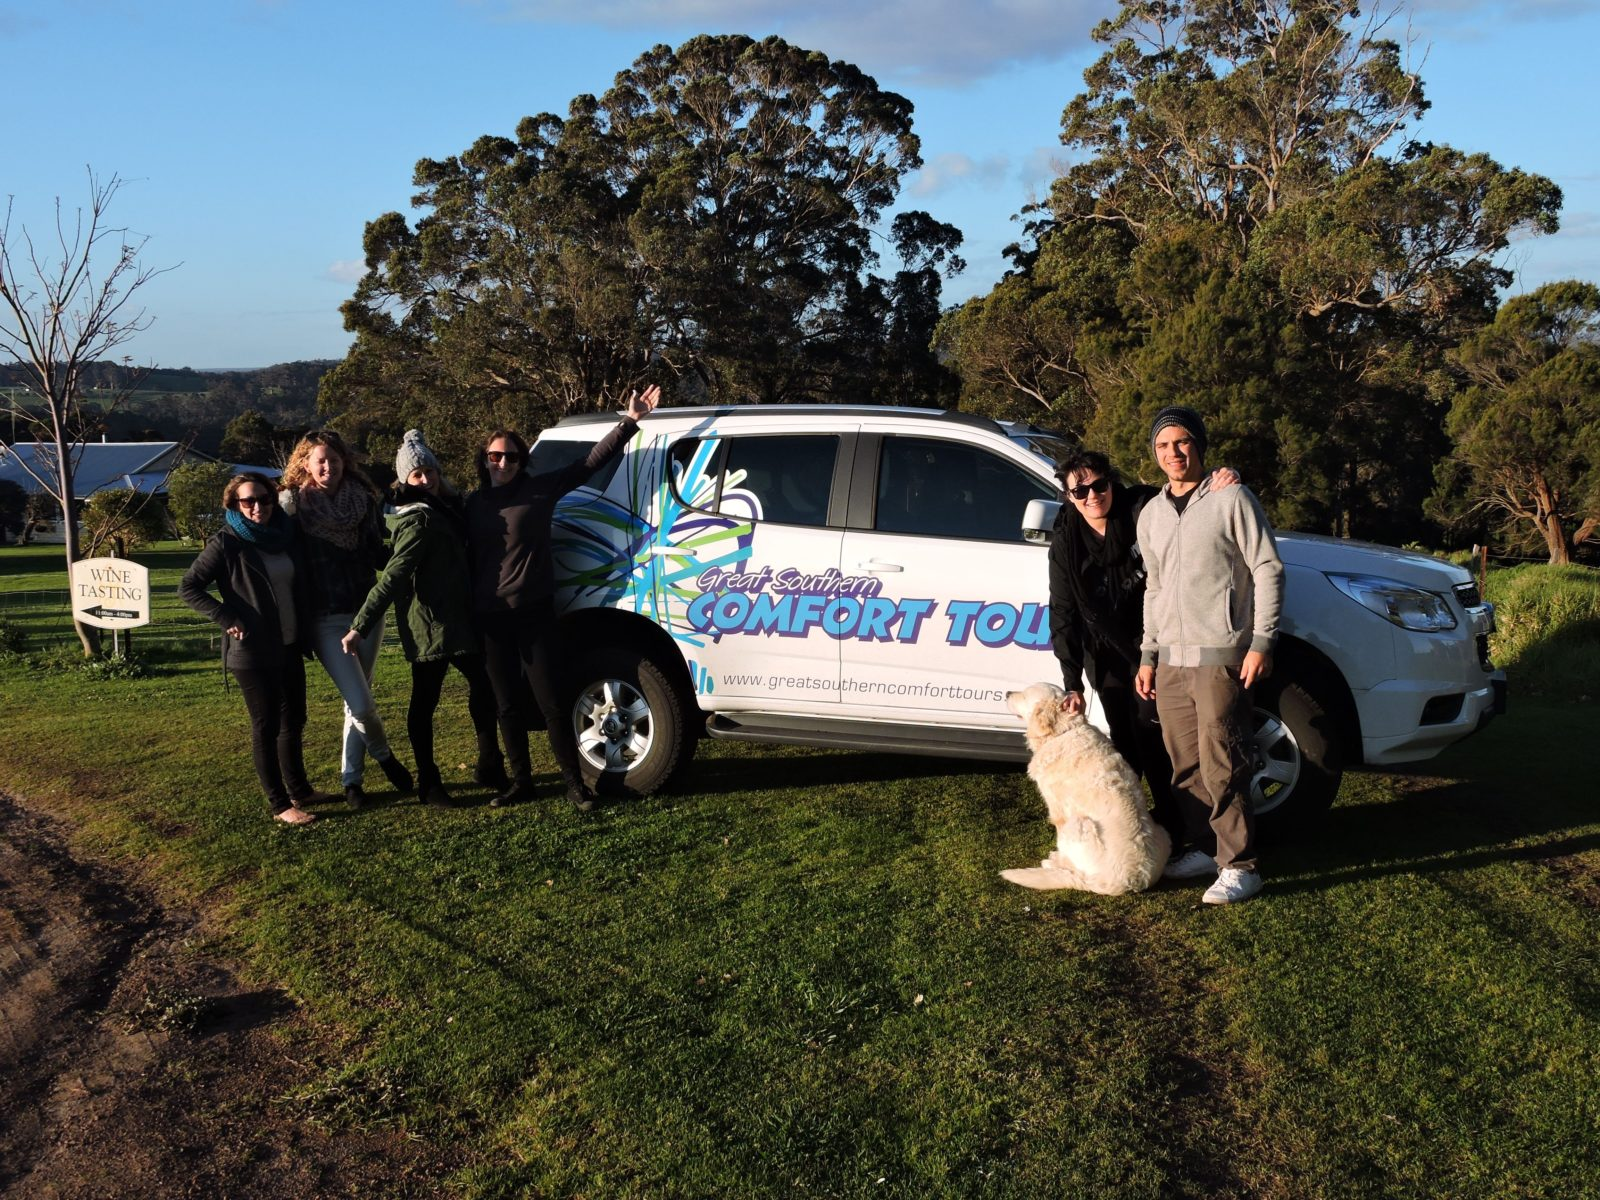 Great Southern Comfort Tours, Albany, Western Australia